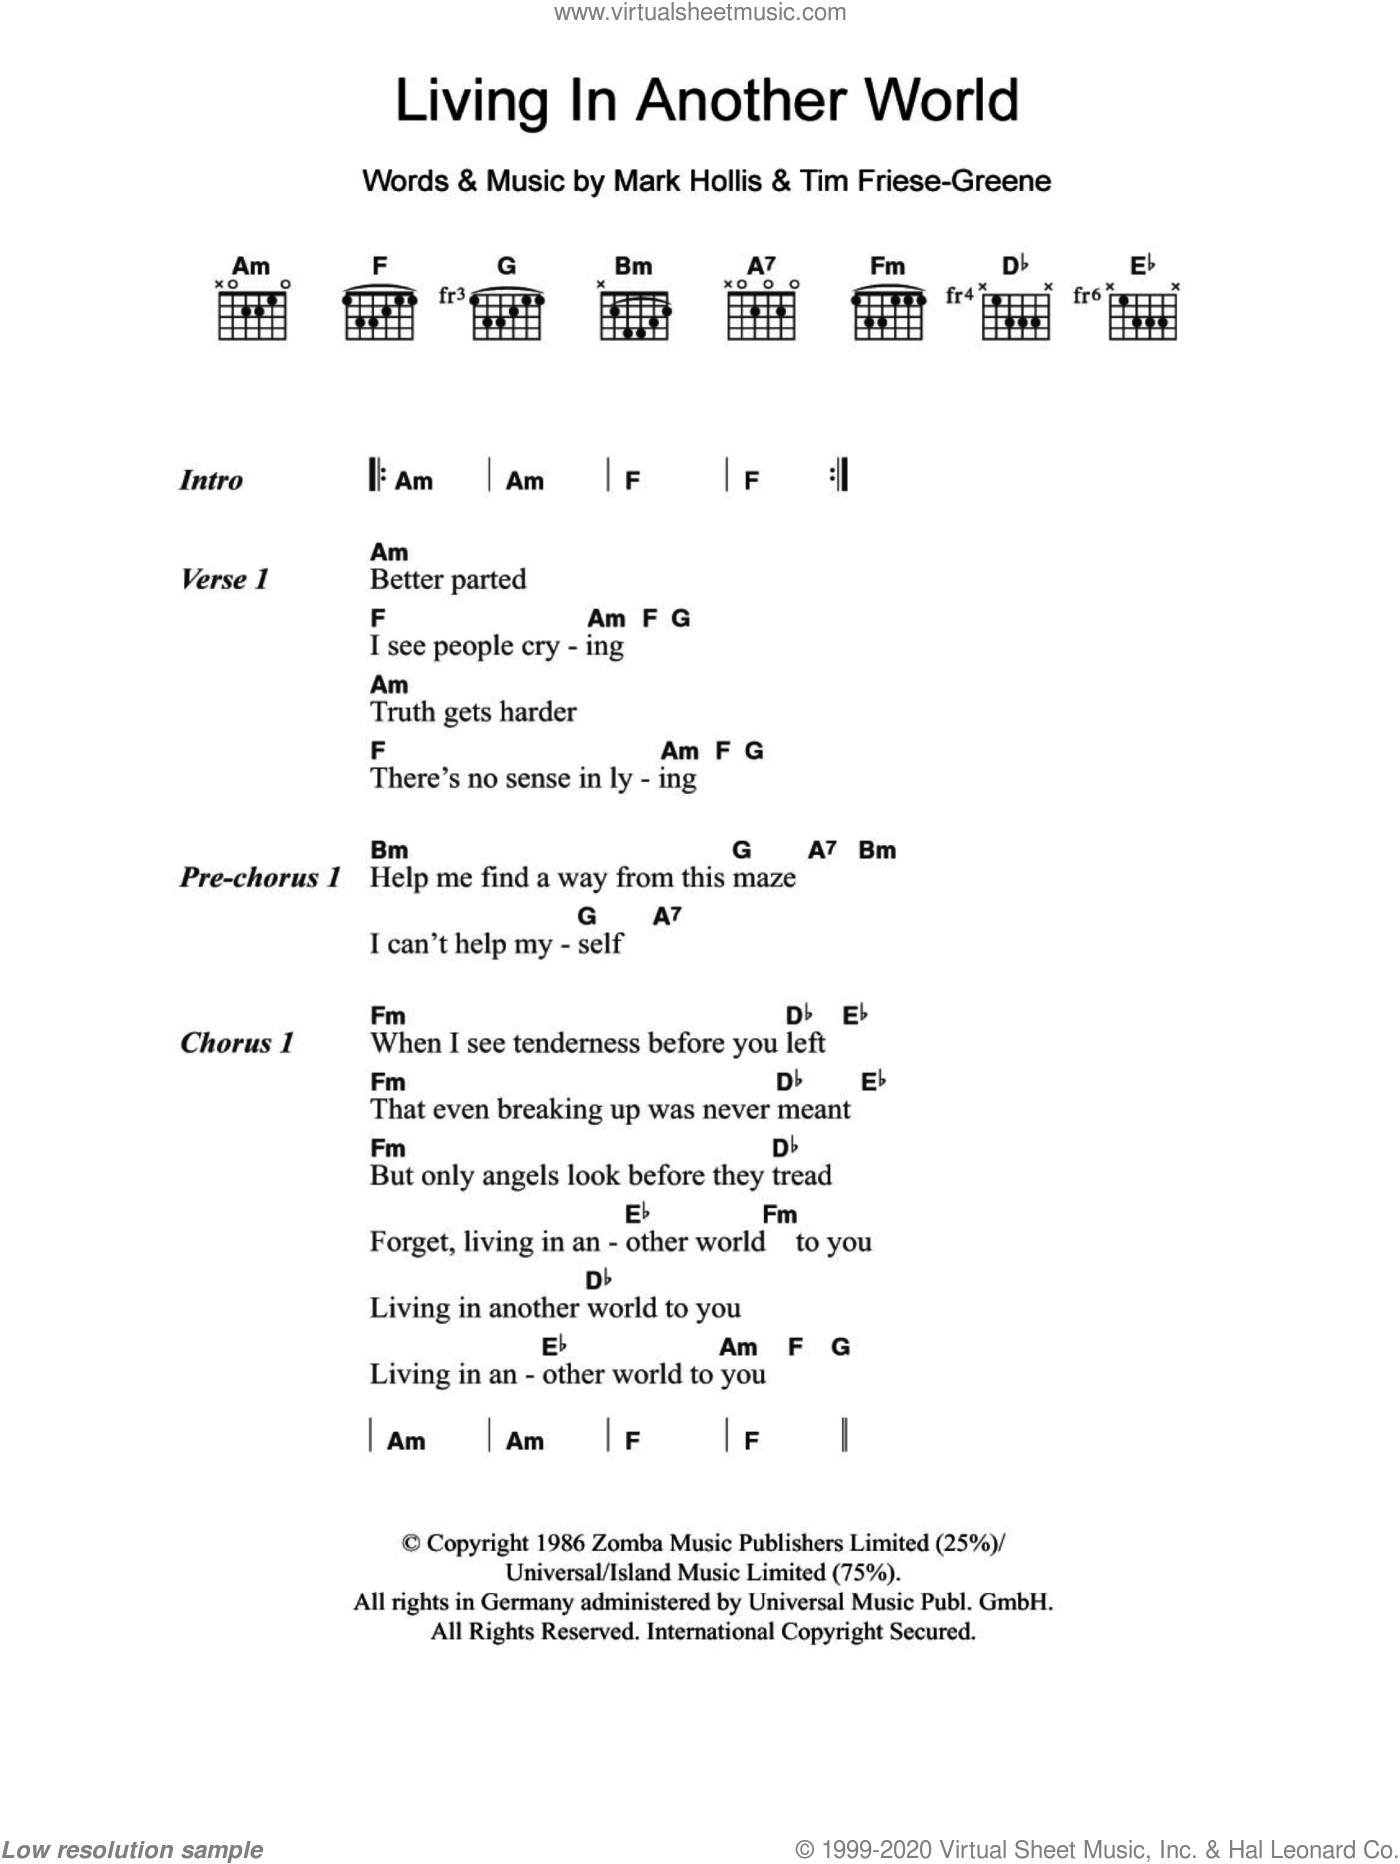 Living In Another World sheet music for guitar (chords) by Tim Friese-Greene and Mark Hollis. Score Image Preview.